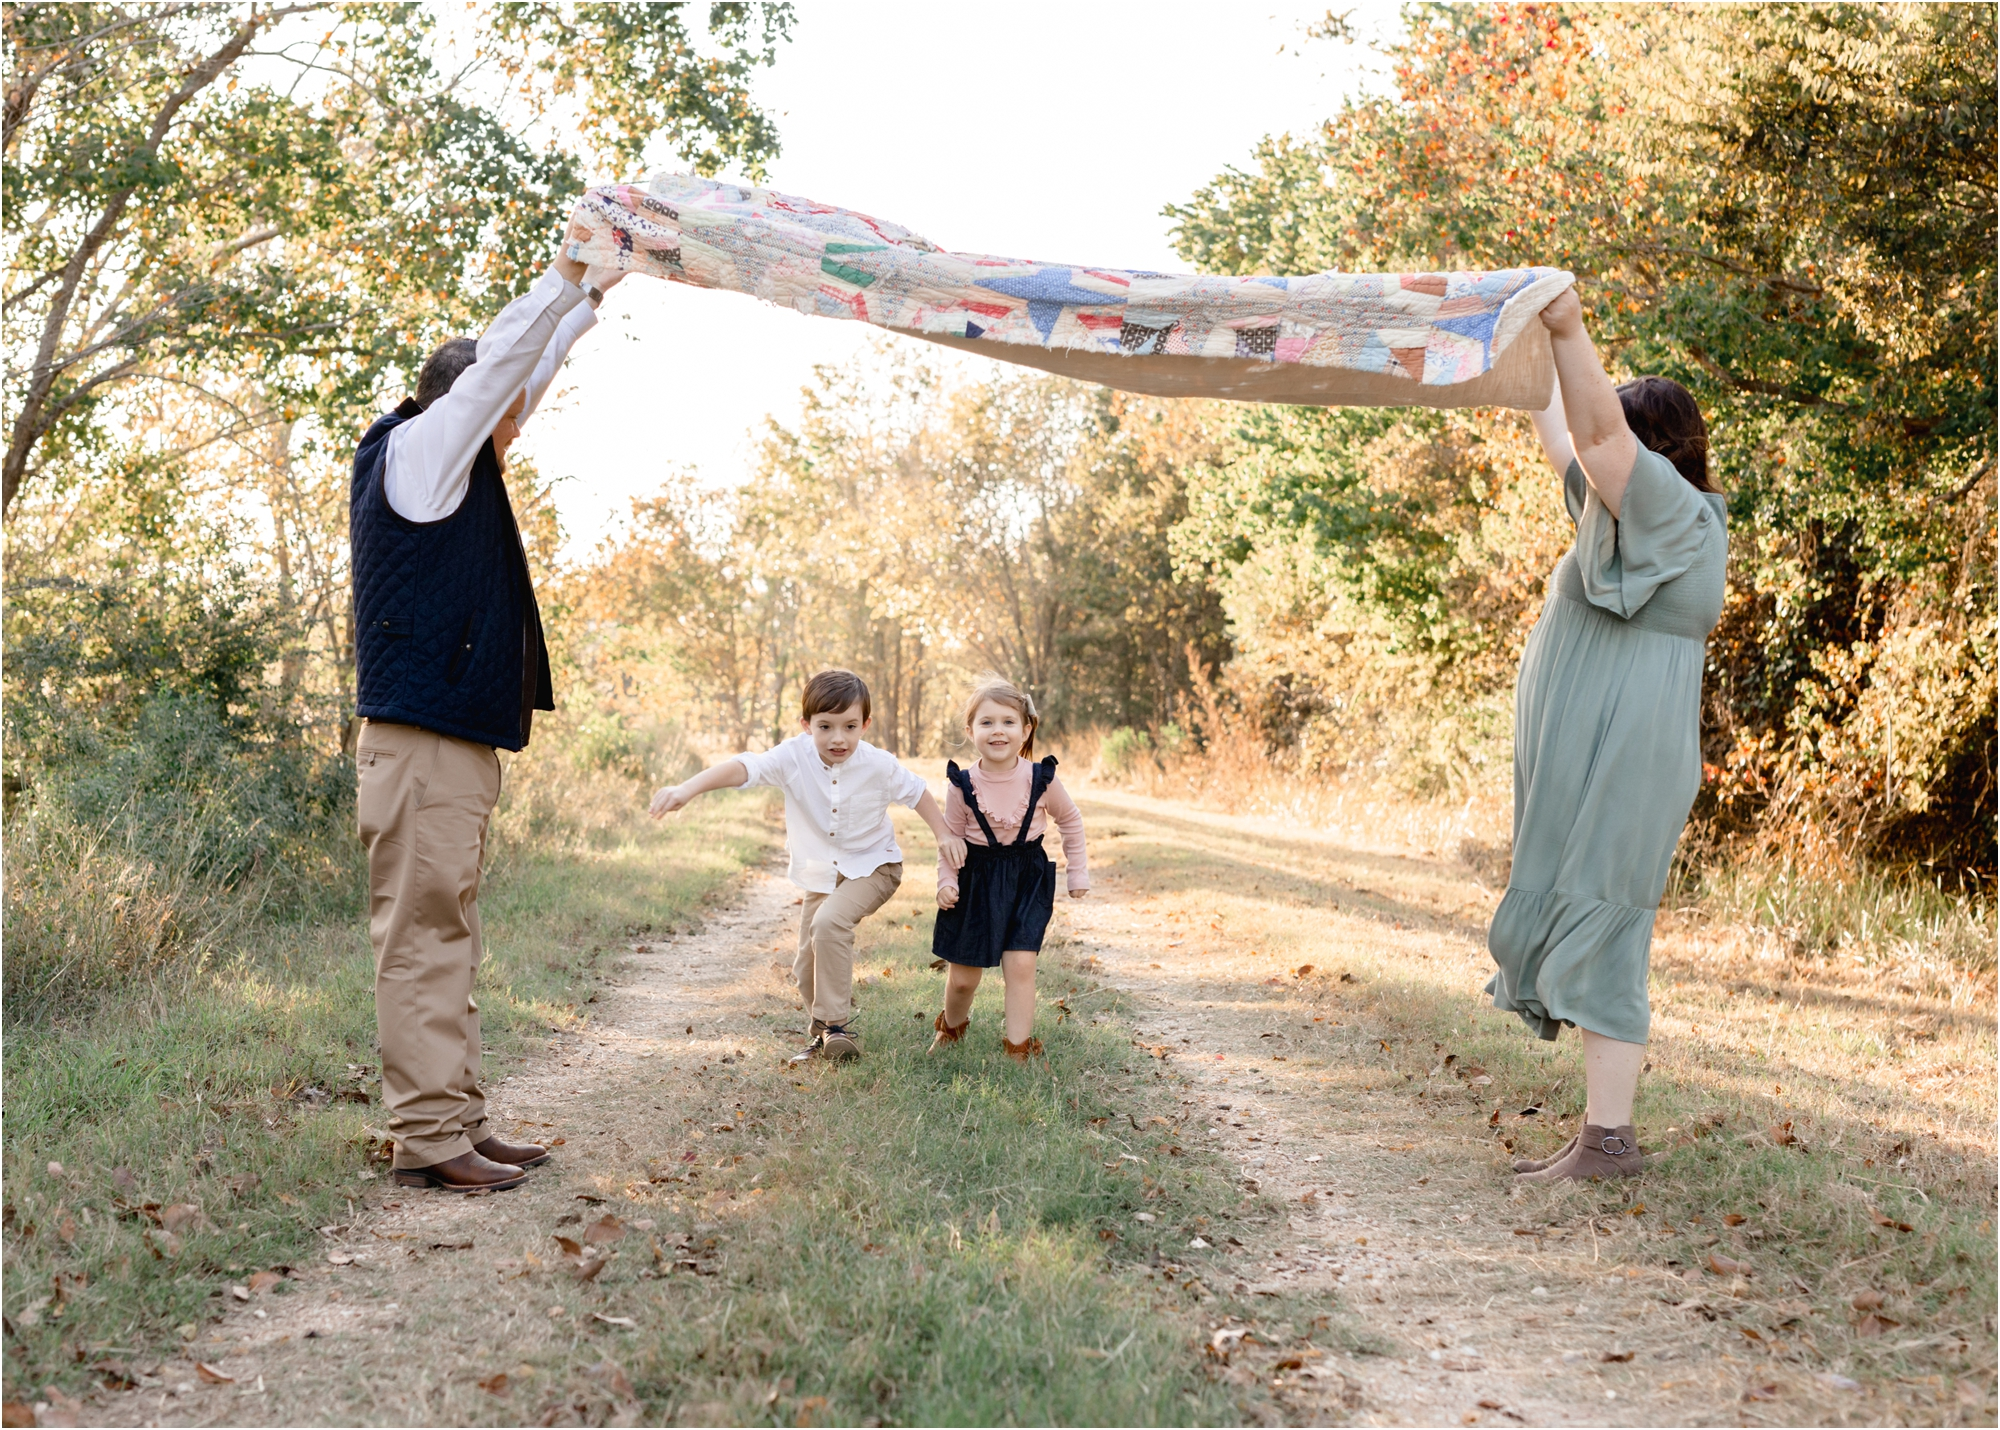 Parents playing with kids running under blanket during family session in Katy, TX park. Photo by Lifetime of Clicks Photography.